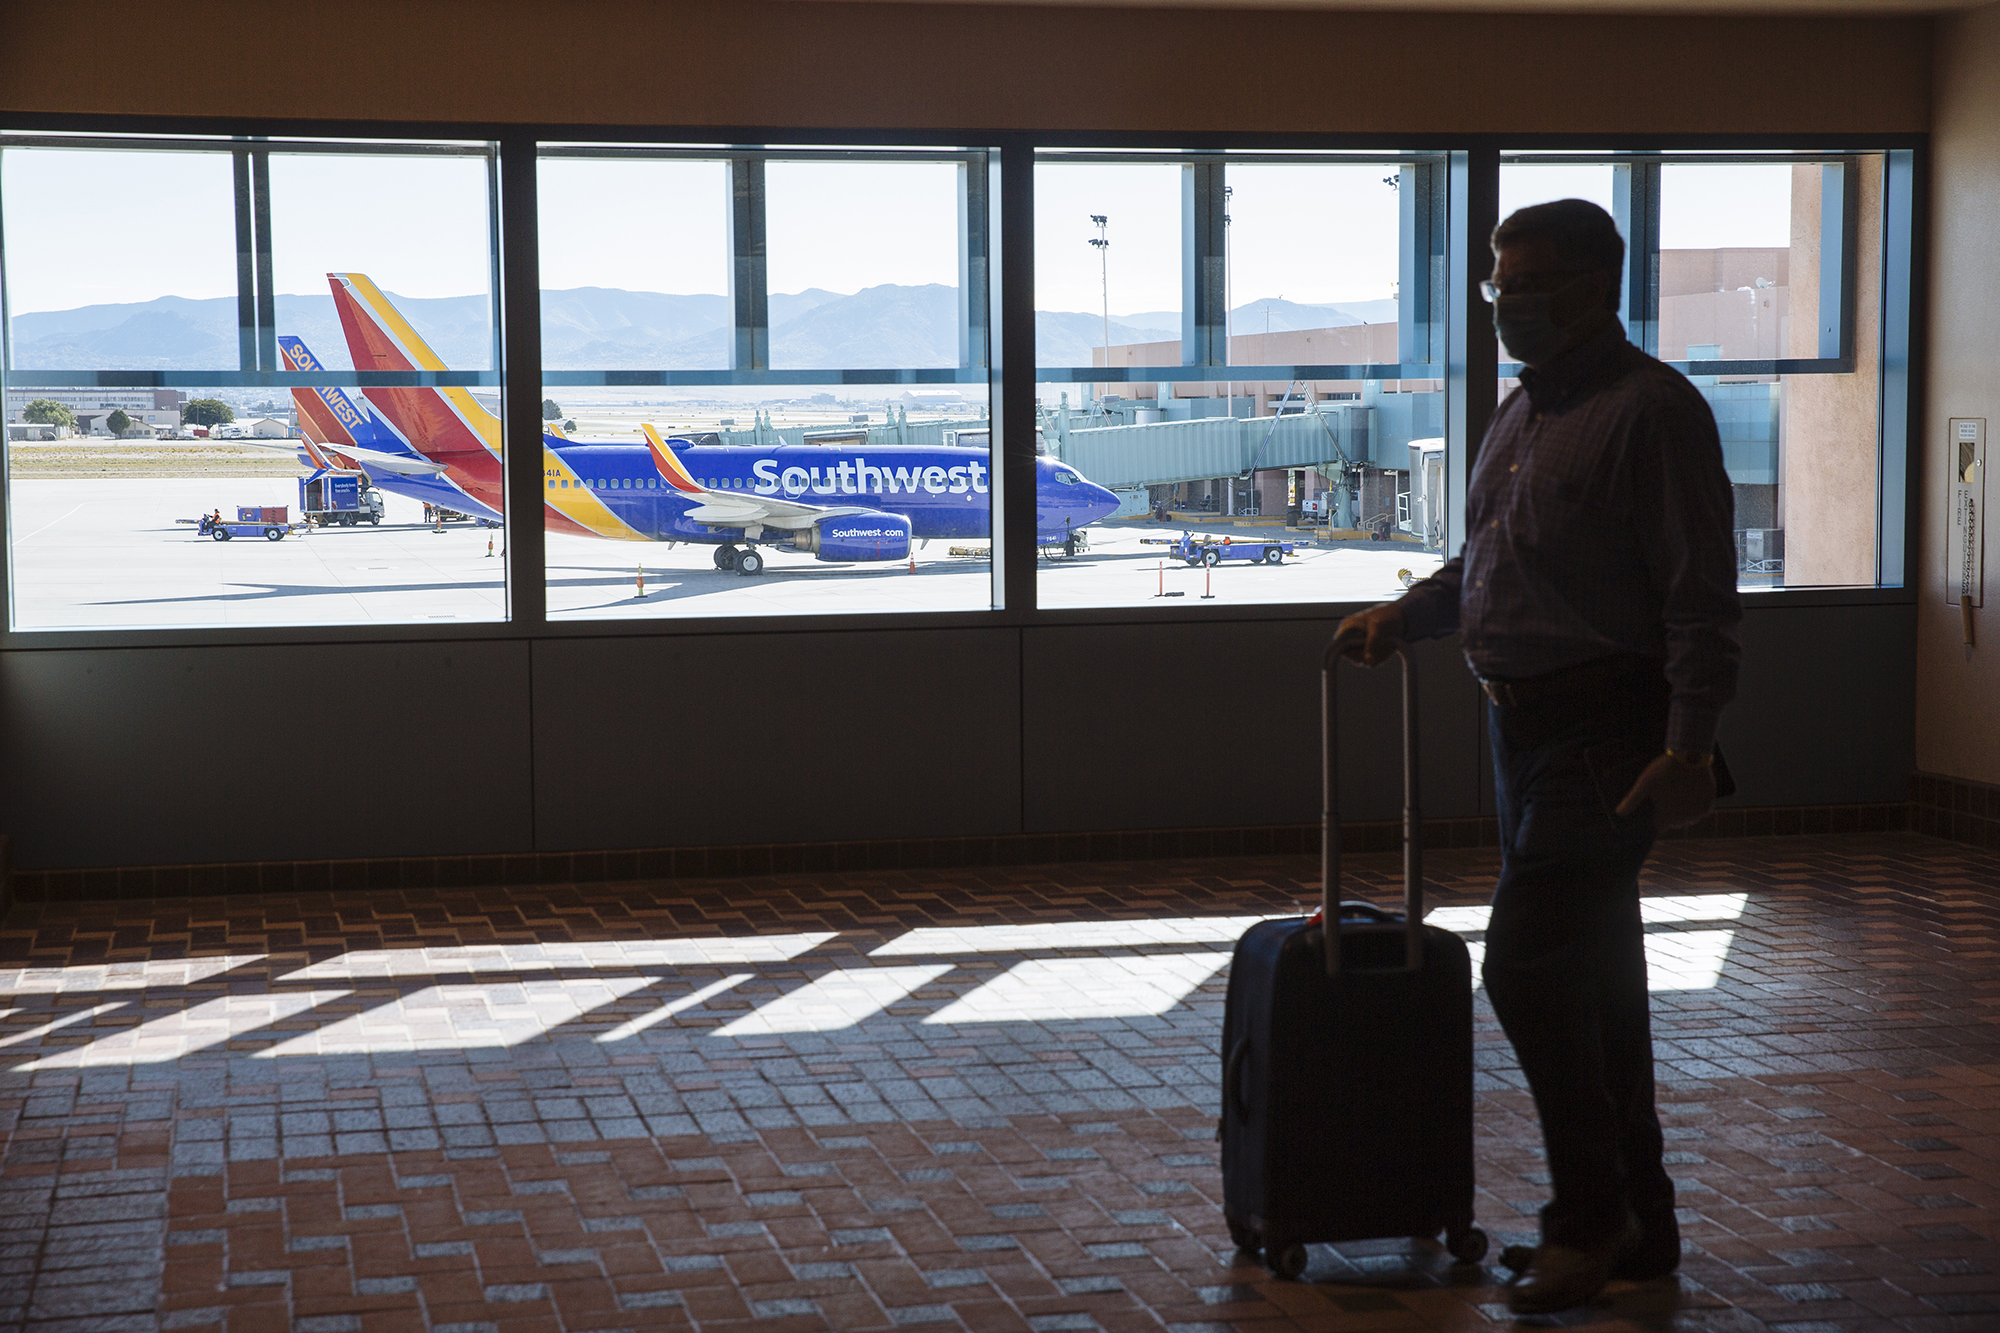 Southwest warns 6,800 employees of impending layoffs, a first for the airline